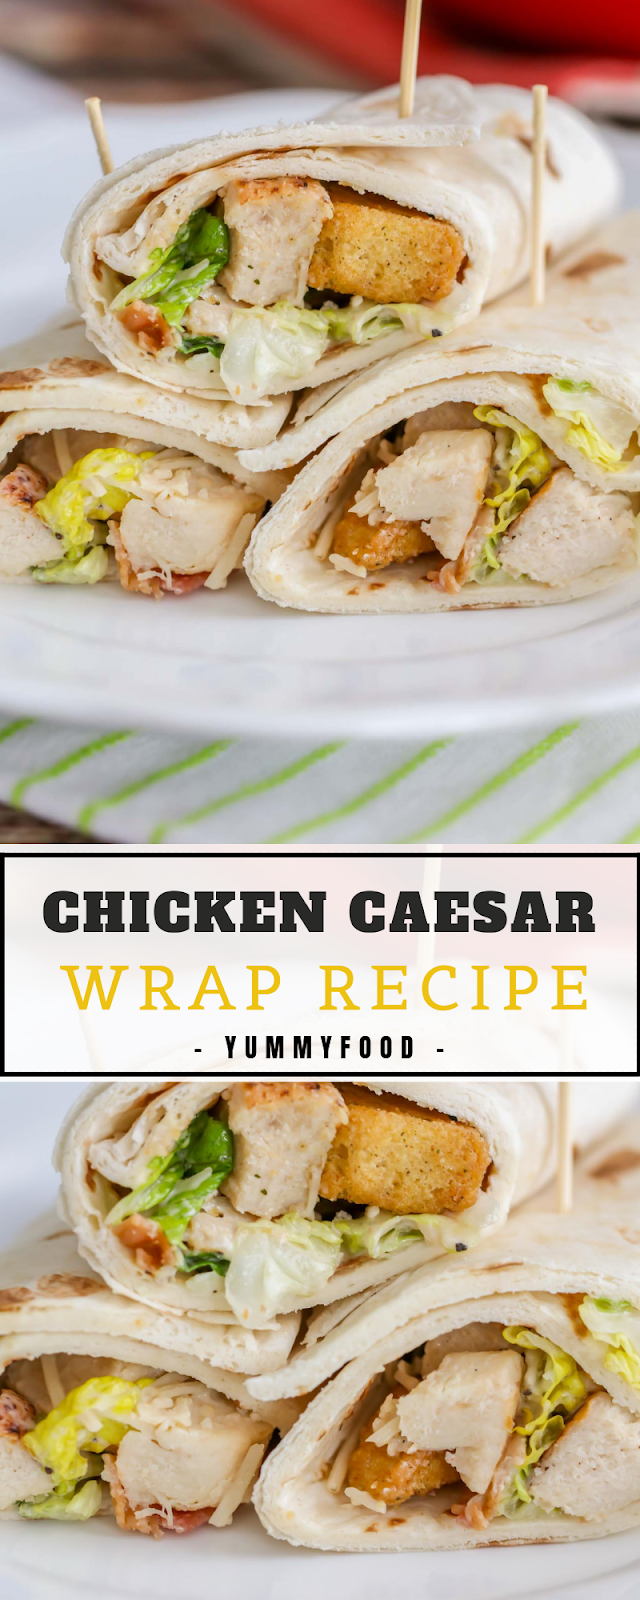 CHICKEN CAESAR WRAP RECIPE